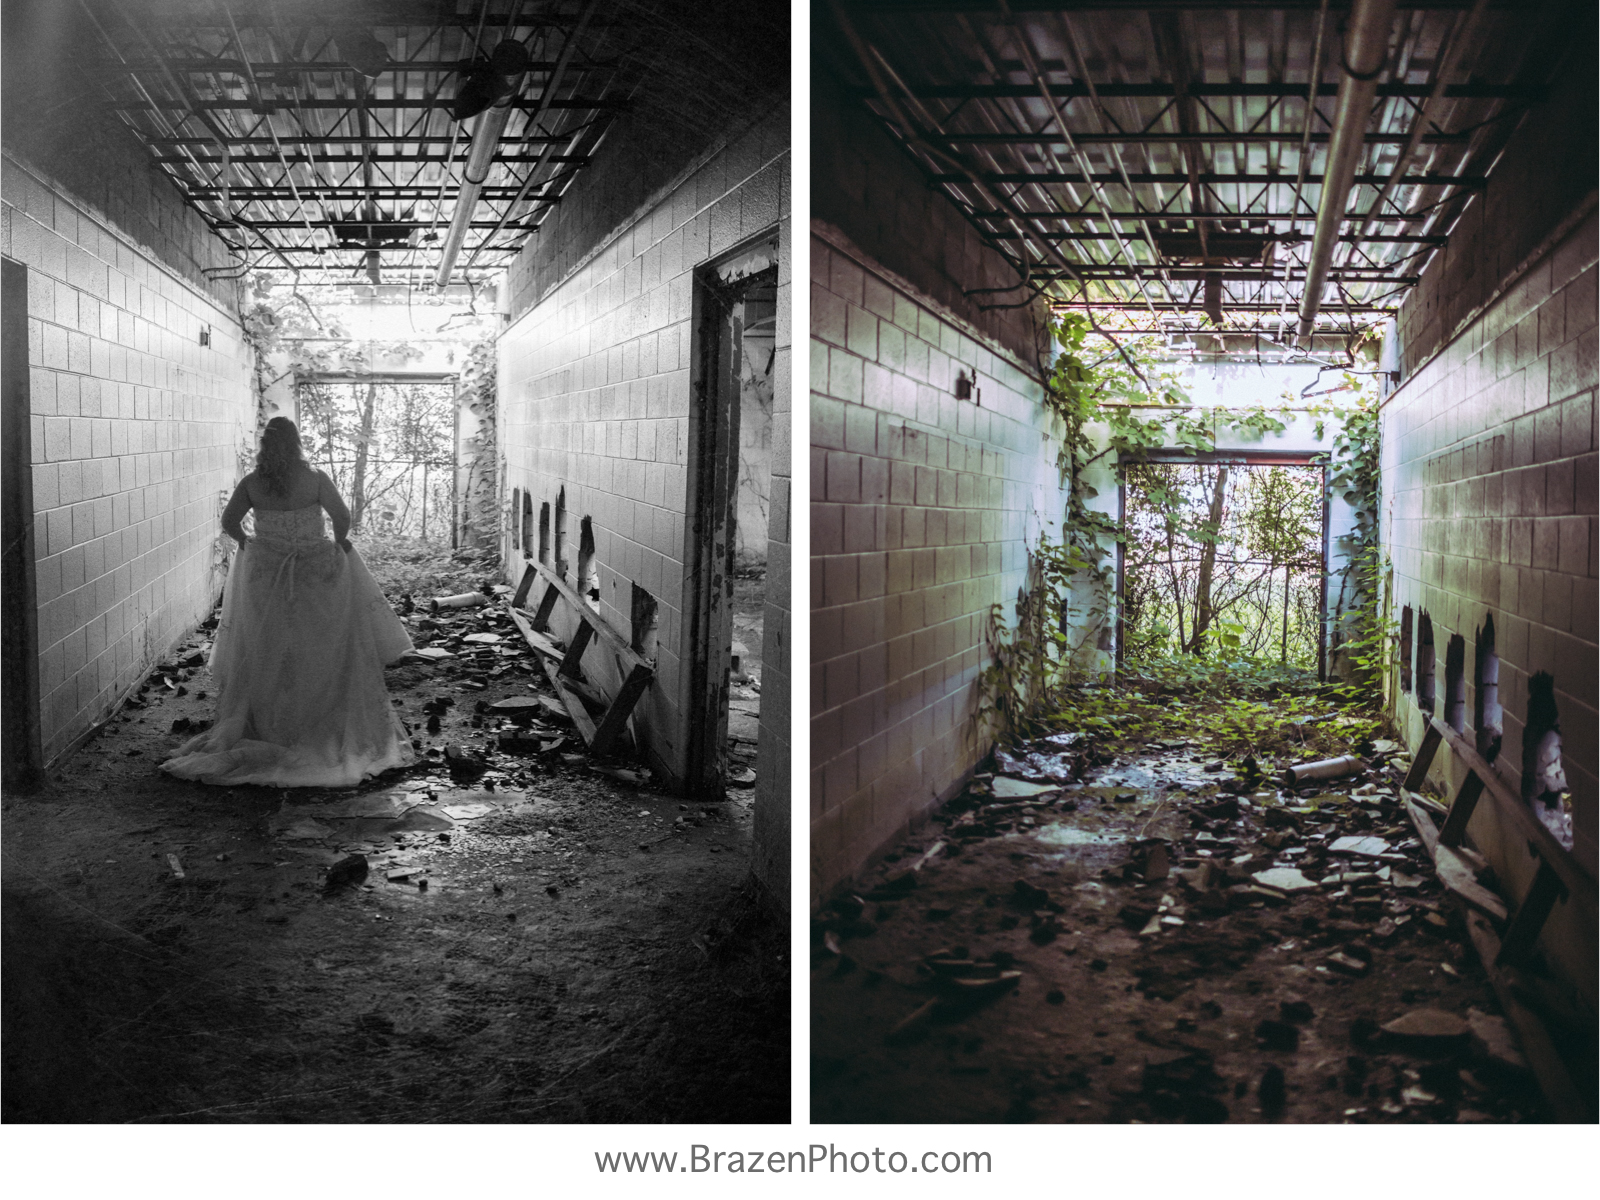 Brazen Photo-Orlando Urban Exploration-J22.jpg